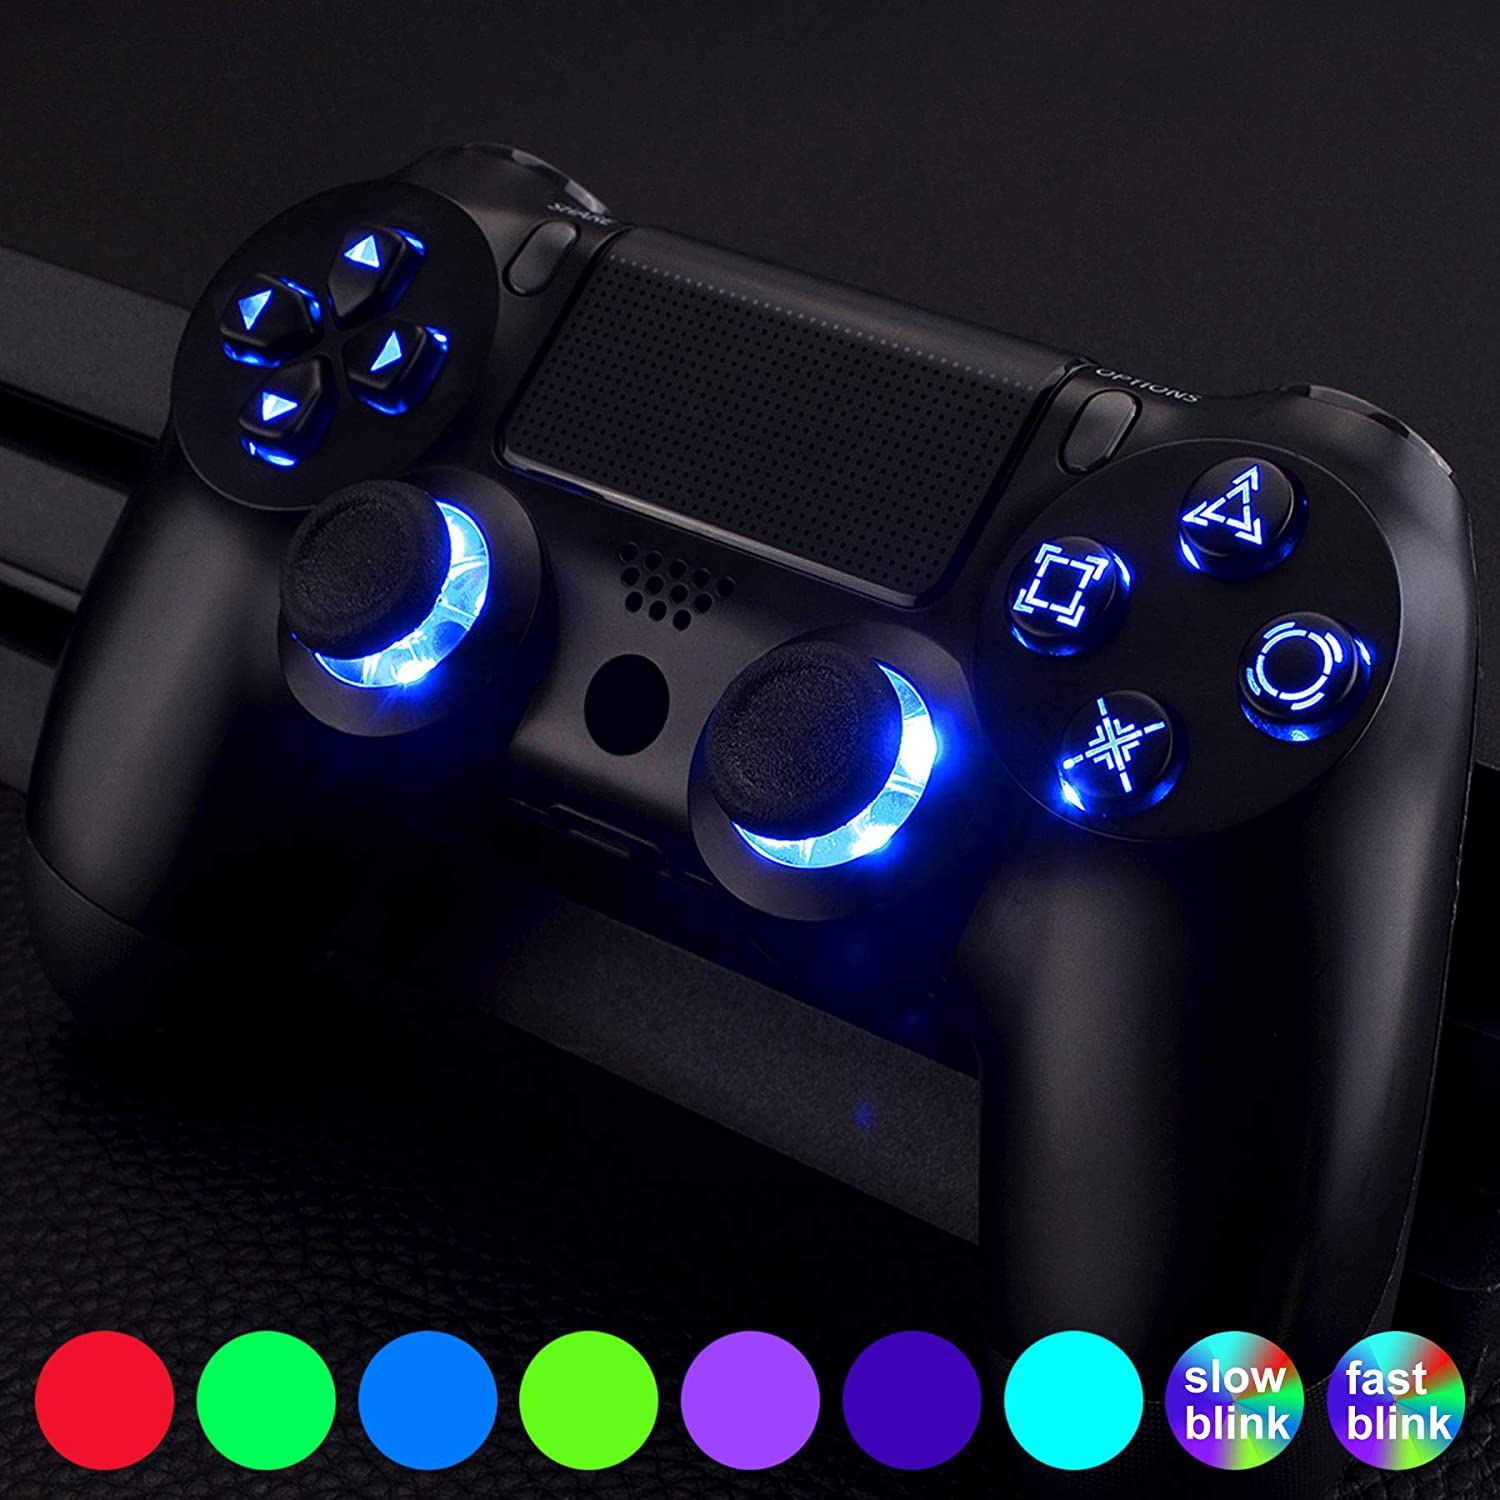 eXtremeRate Multi-Colors Luminated D-pad Thumbsticks Face Buttons (DTF) LED DIY Kit with Classical Symbols Buttons Set for PS4 Controller Universal - 7 Colors 9 Modes Touch Control